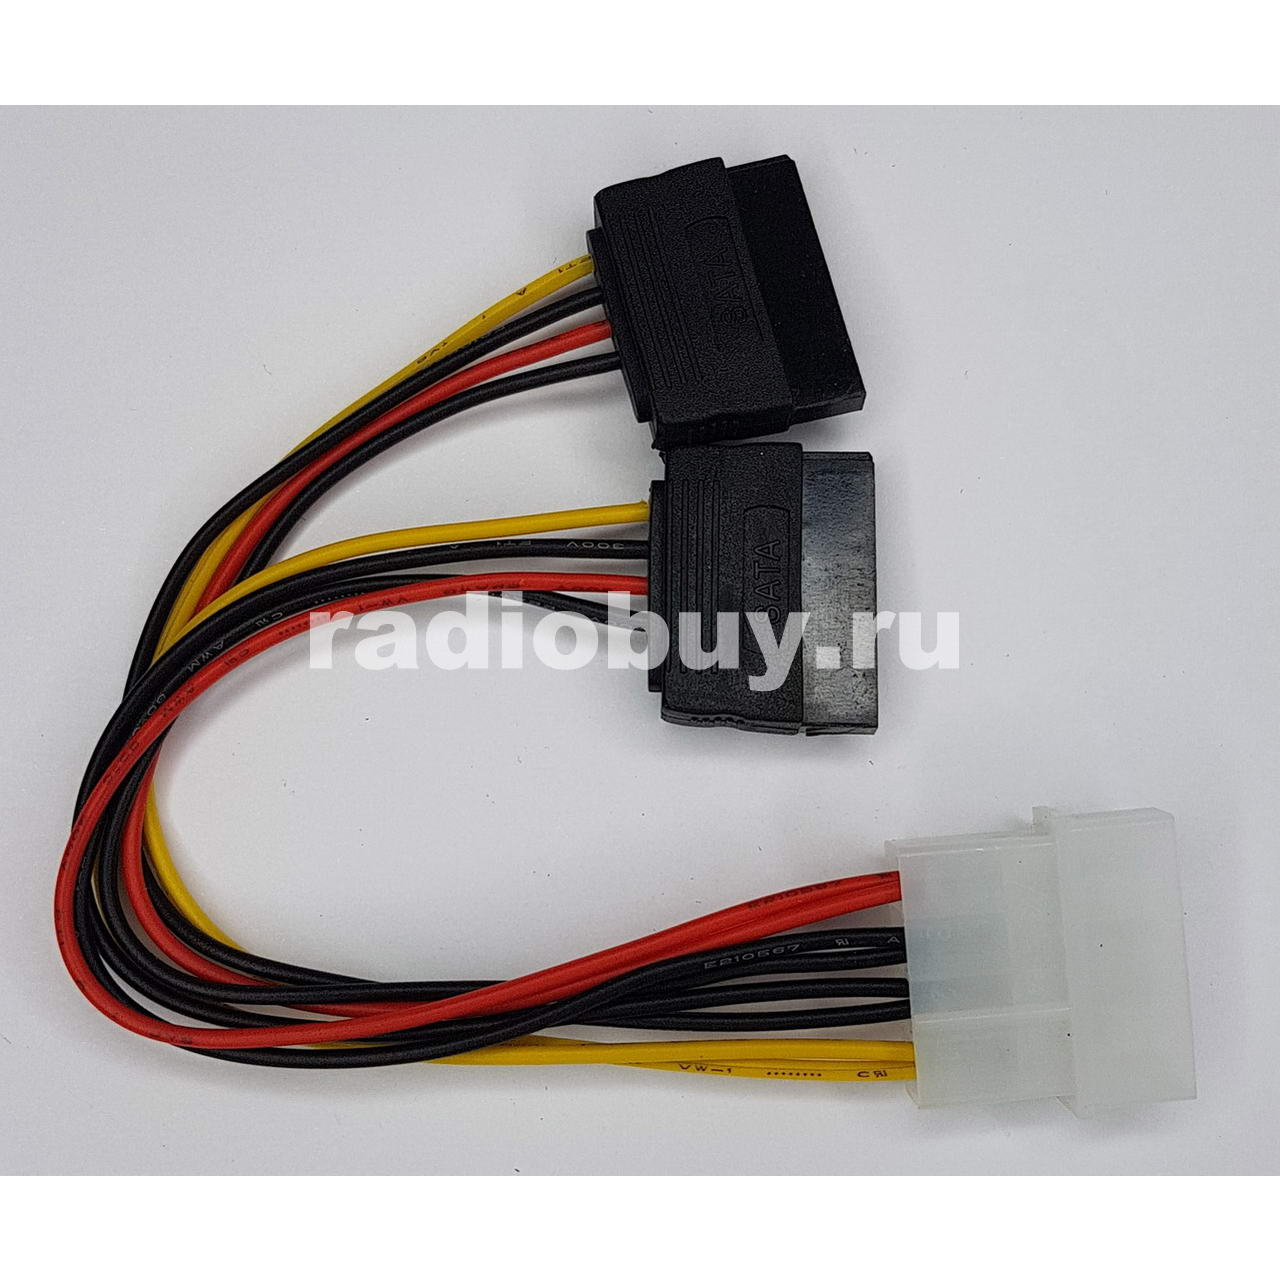 Переходник FinePower Molex - SATA x2